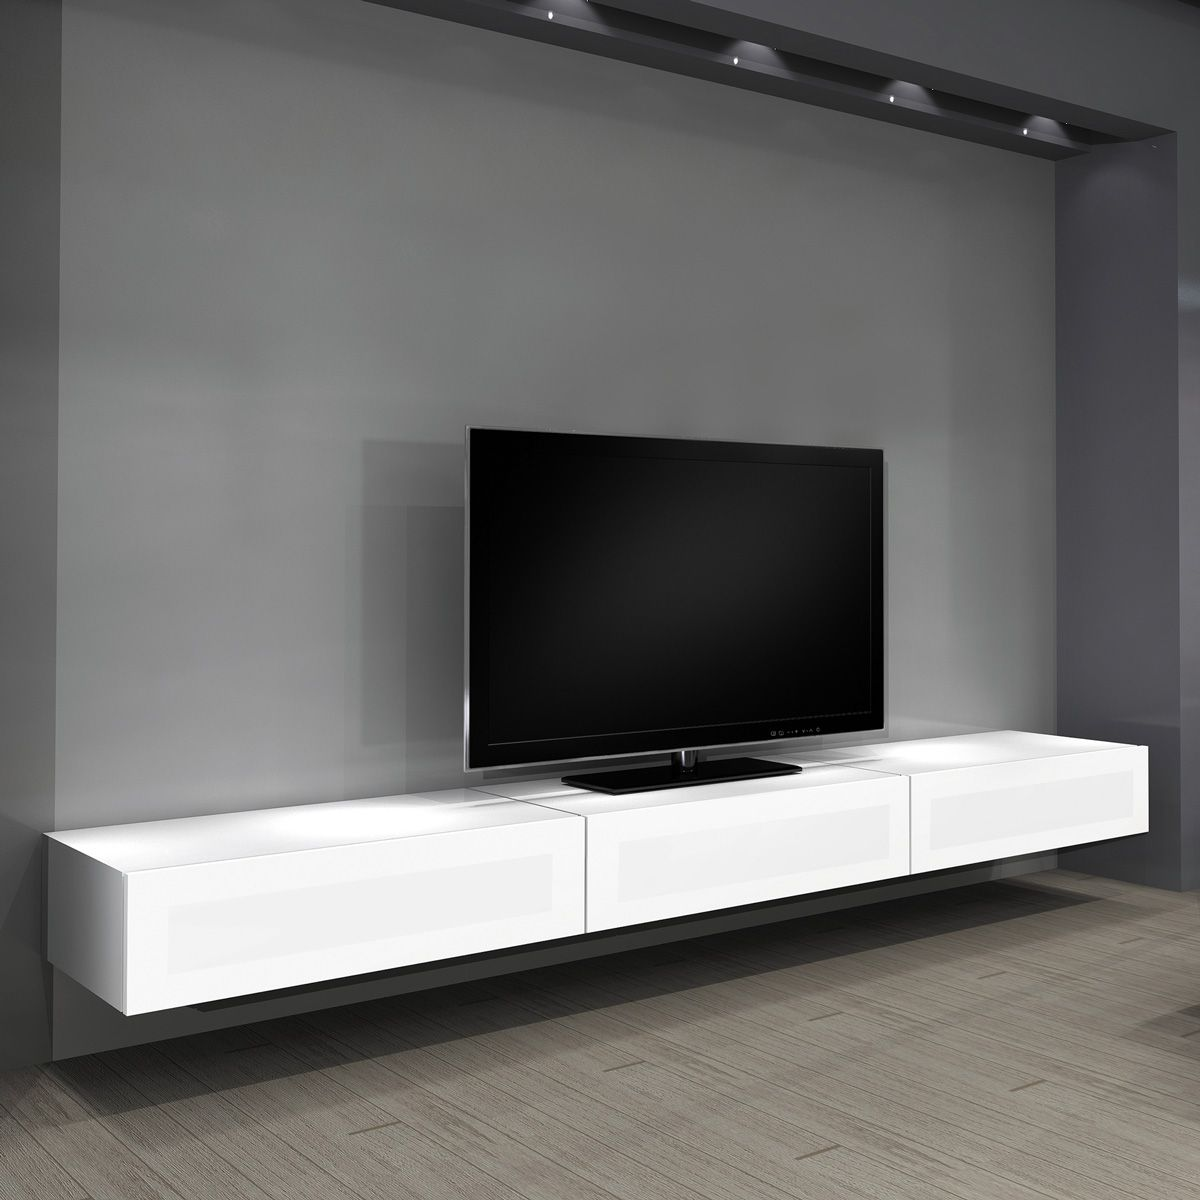 White Wall Mounted Tv Stands Furniture In 2019 Floating Shelves